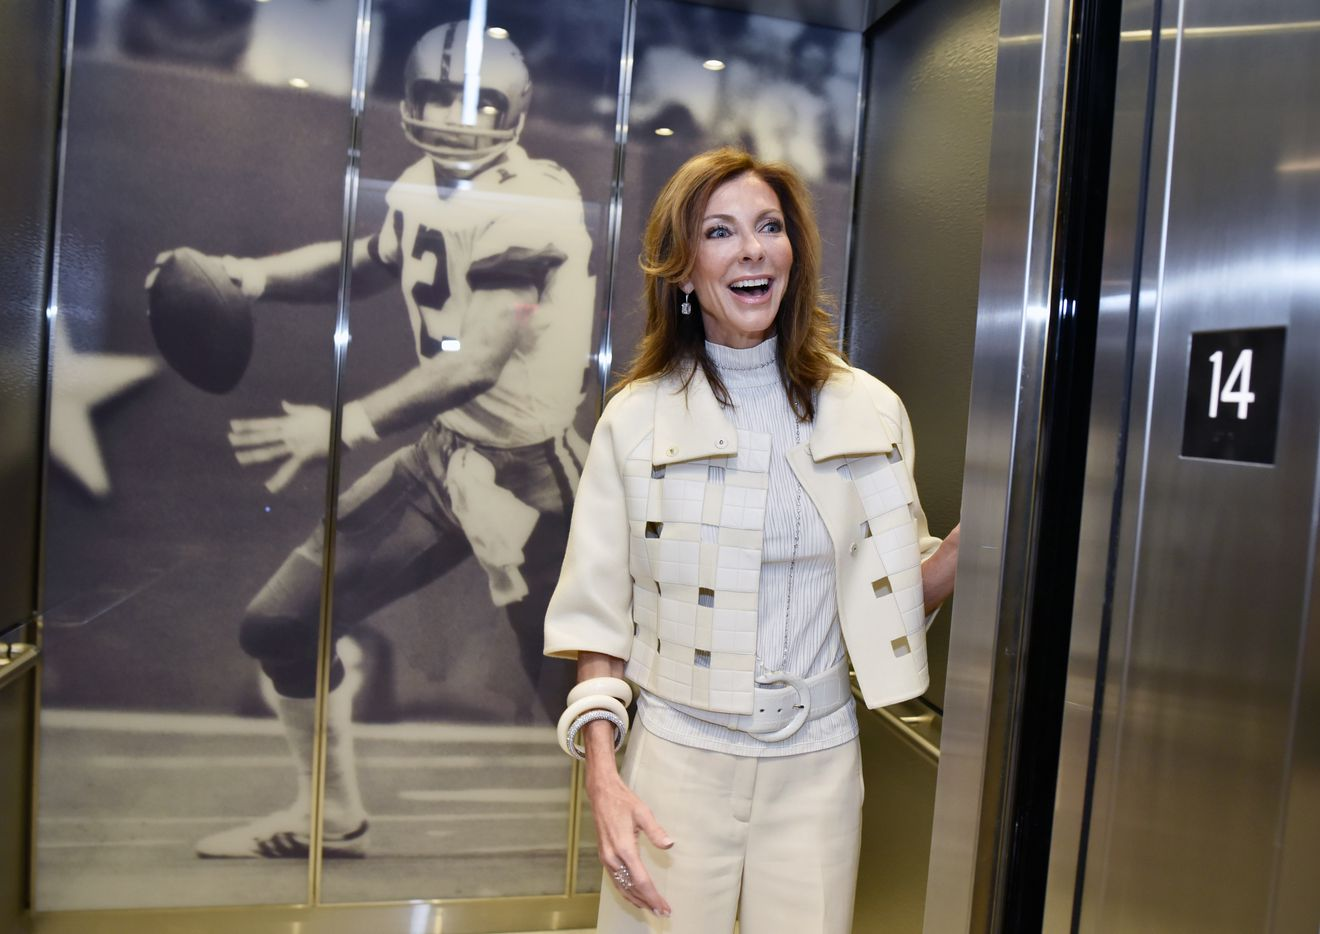 Charlotte Jones walks into an elevator decorated with a giant image of former Dallas Cowboys quarterback Roger Staubach, as she conducted a tour of the Twelve Cowboys Way luxury residential tower at the Star in Frisco.